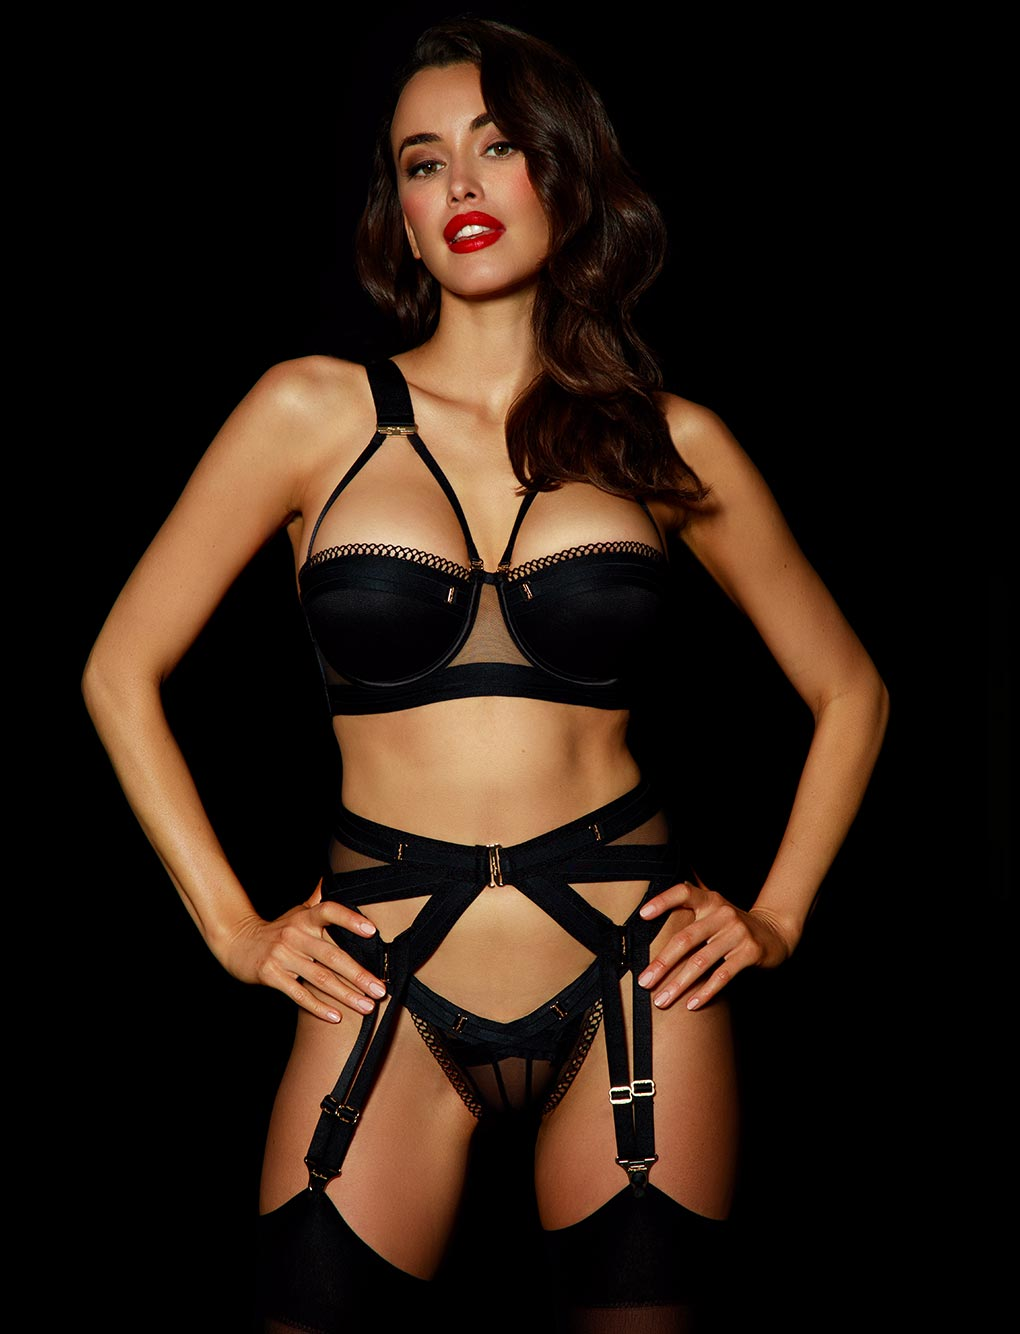 Vienna Belt Suspender - Shop Lingerie | Honey Birdette